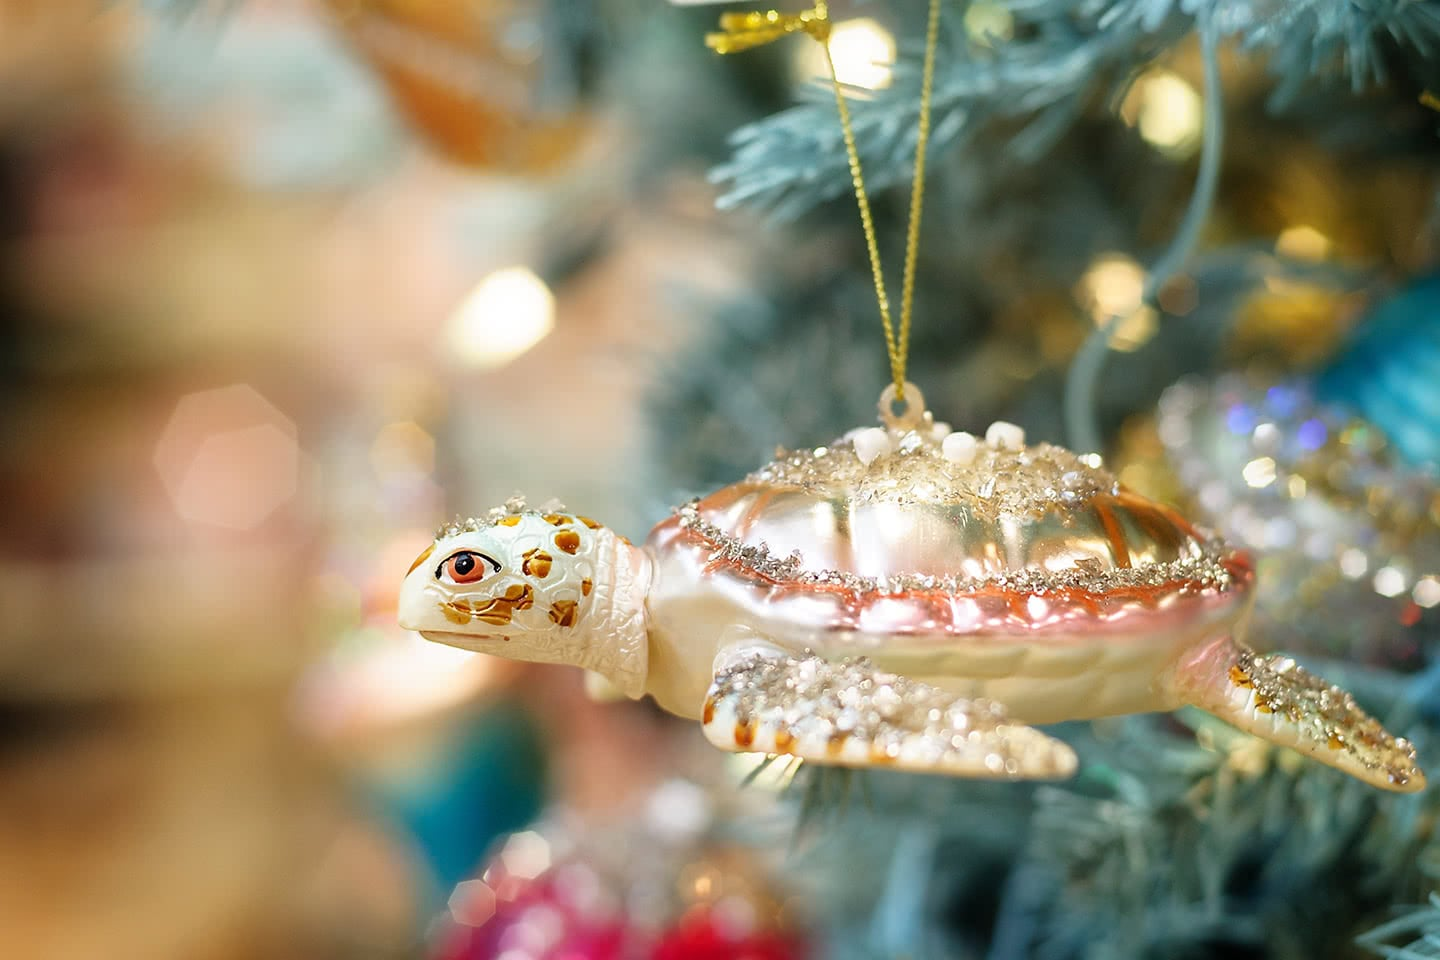 From Under the Sea - Magical Sea Life Ornaments with Starfish and Sea Turtles